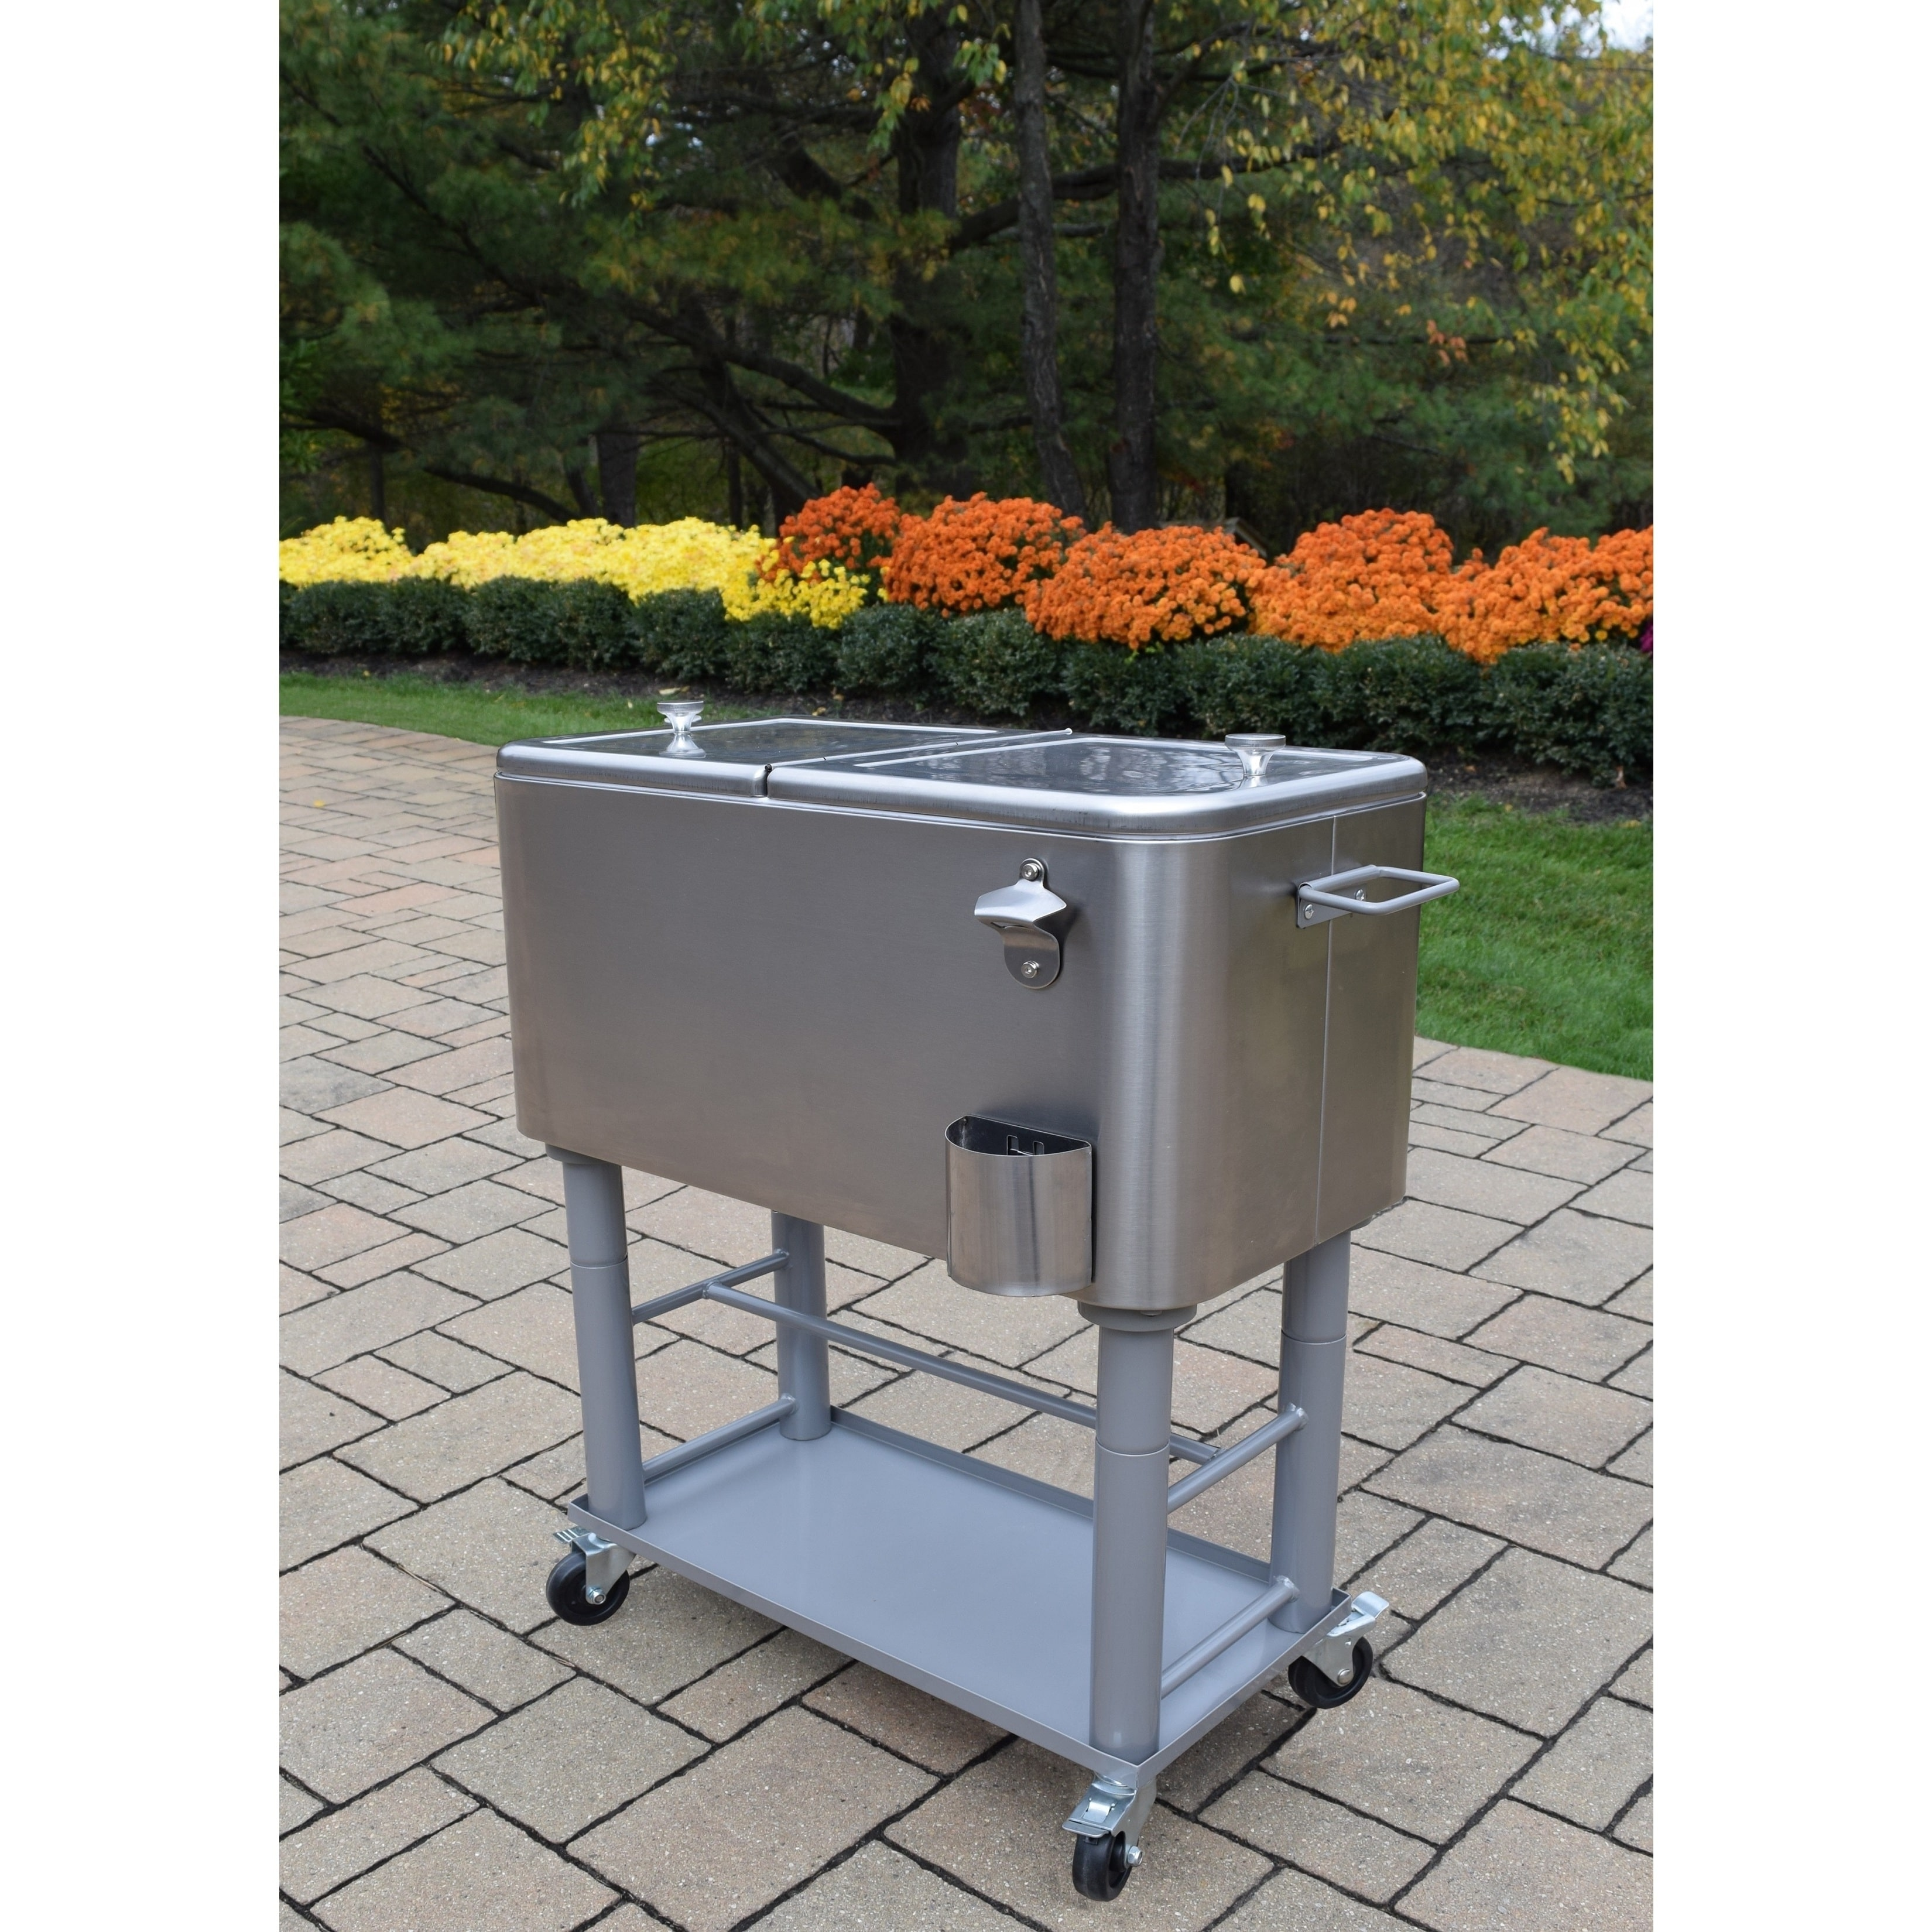 Oakland Living Corporation All-in-1 60 qt. Silver Finished Steel Detachable Cooler Cart